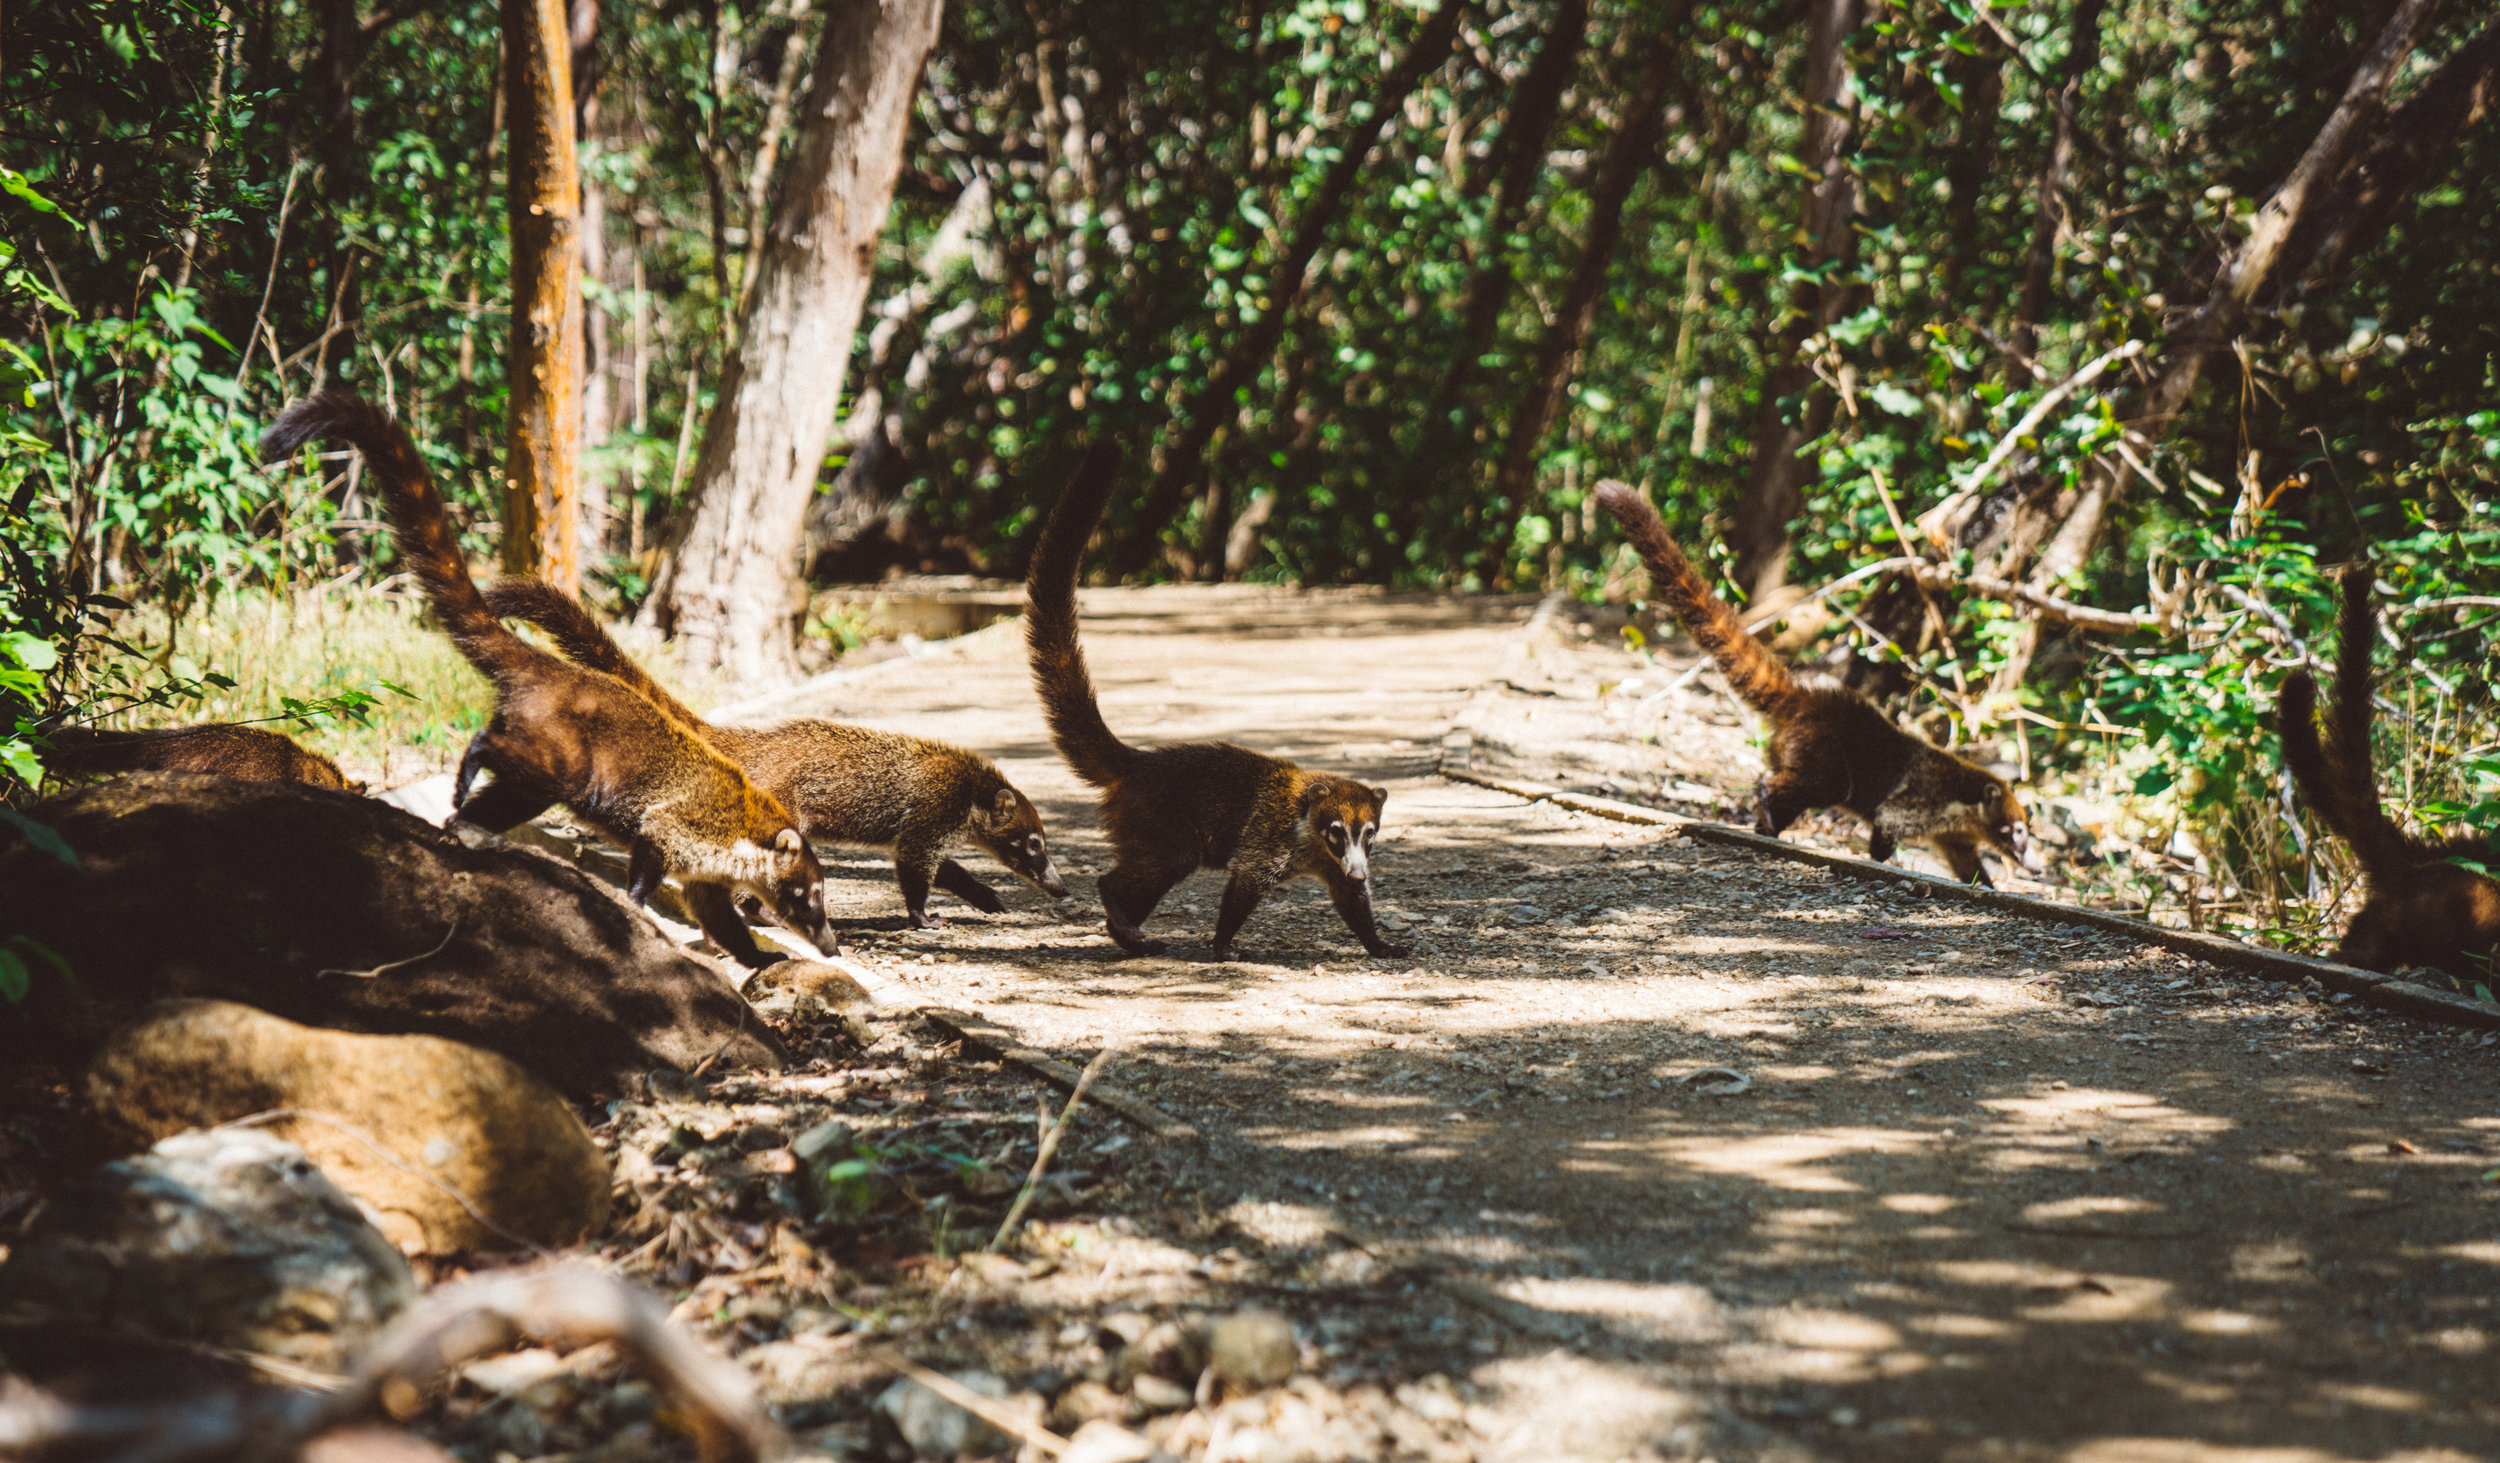 A gang of over thirty coatis crossing the trail in front of us.